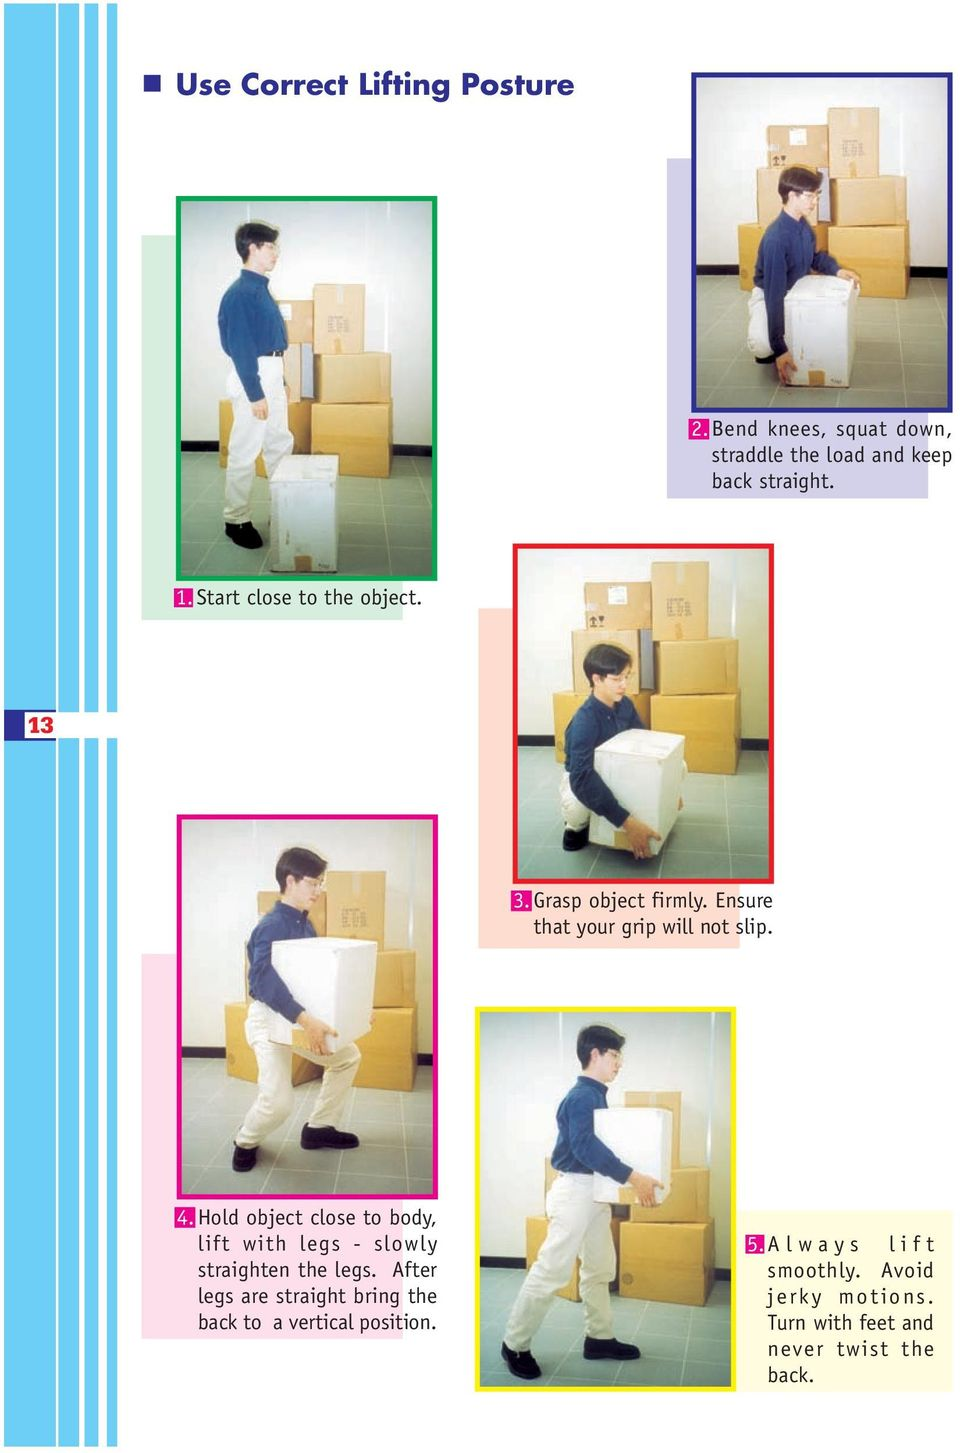 Hold object close to body, lift with legs - slowly straighten the legs.